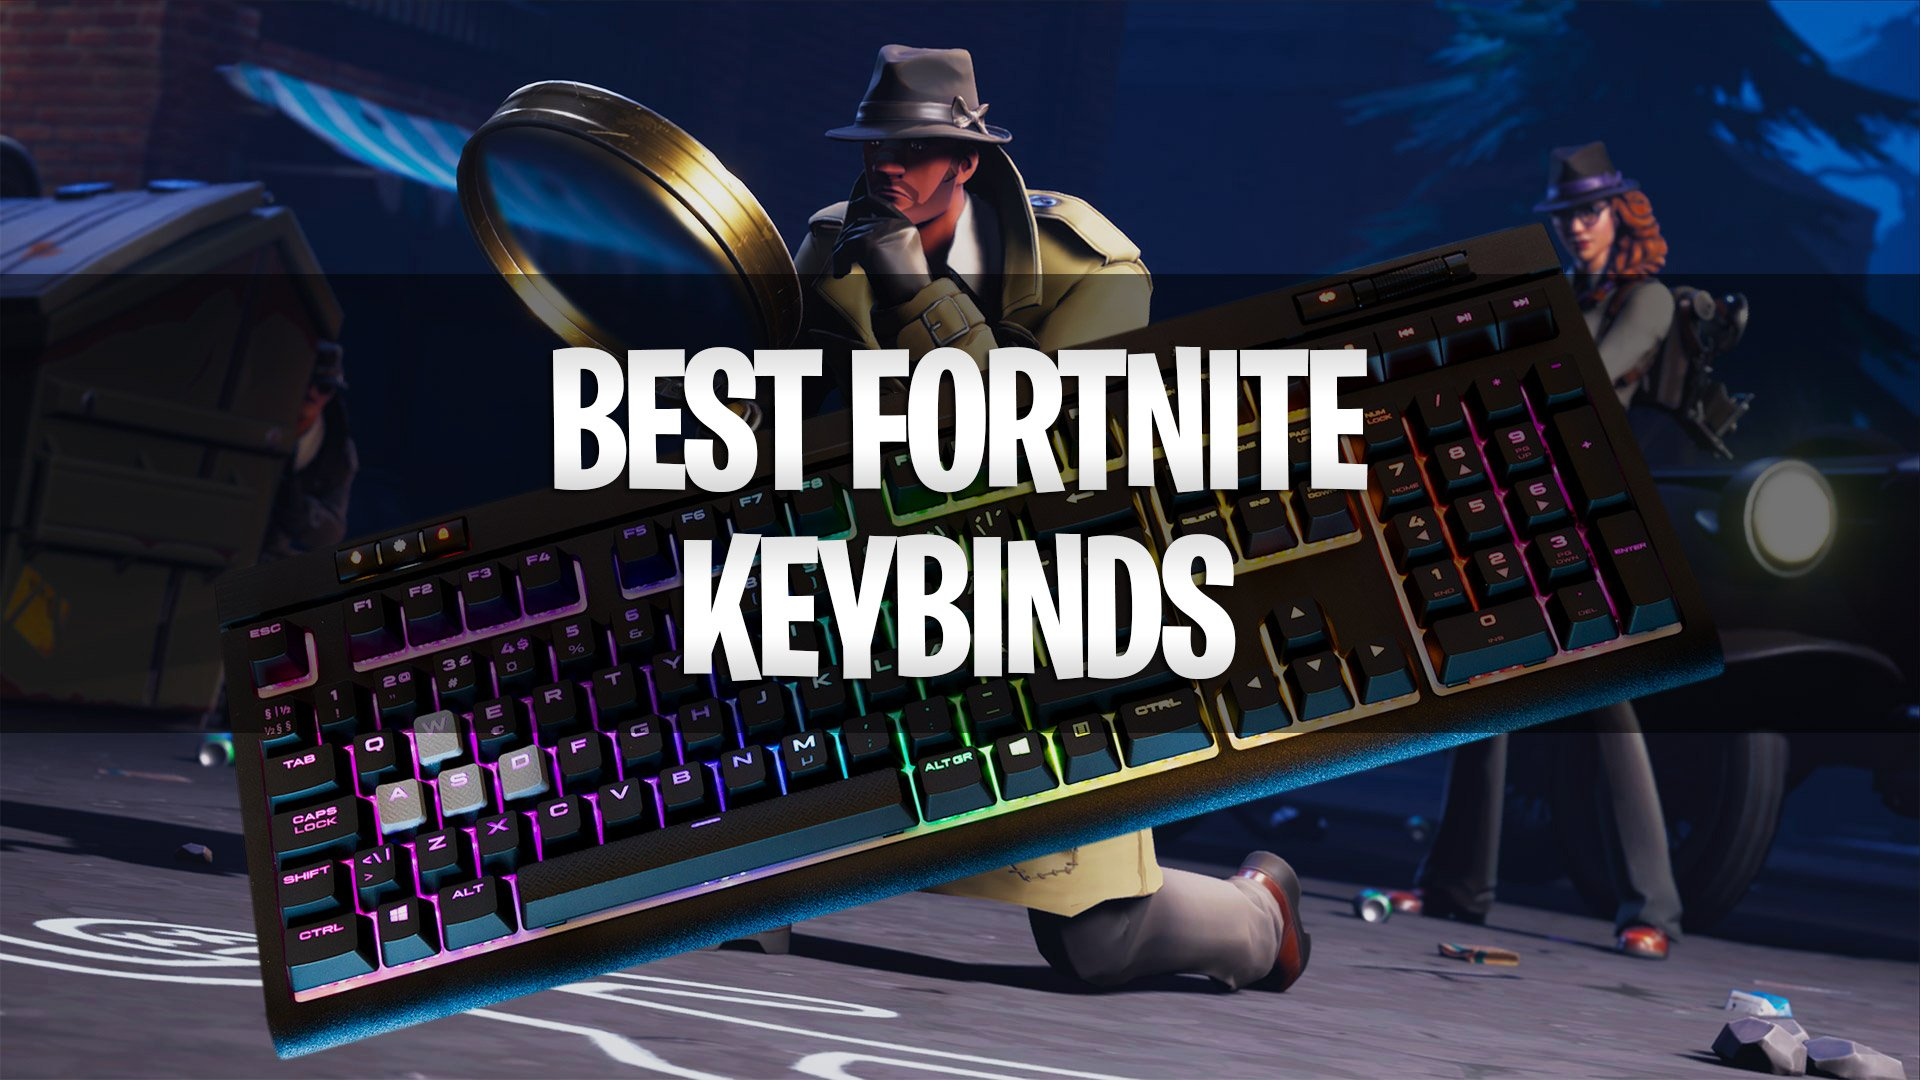 The Best Fortnite Keybinds 2019 - ProSettings com Guide